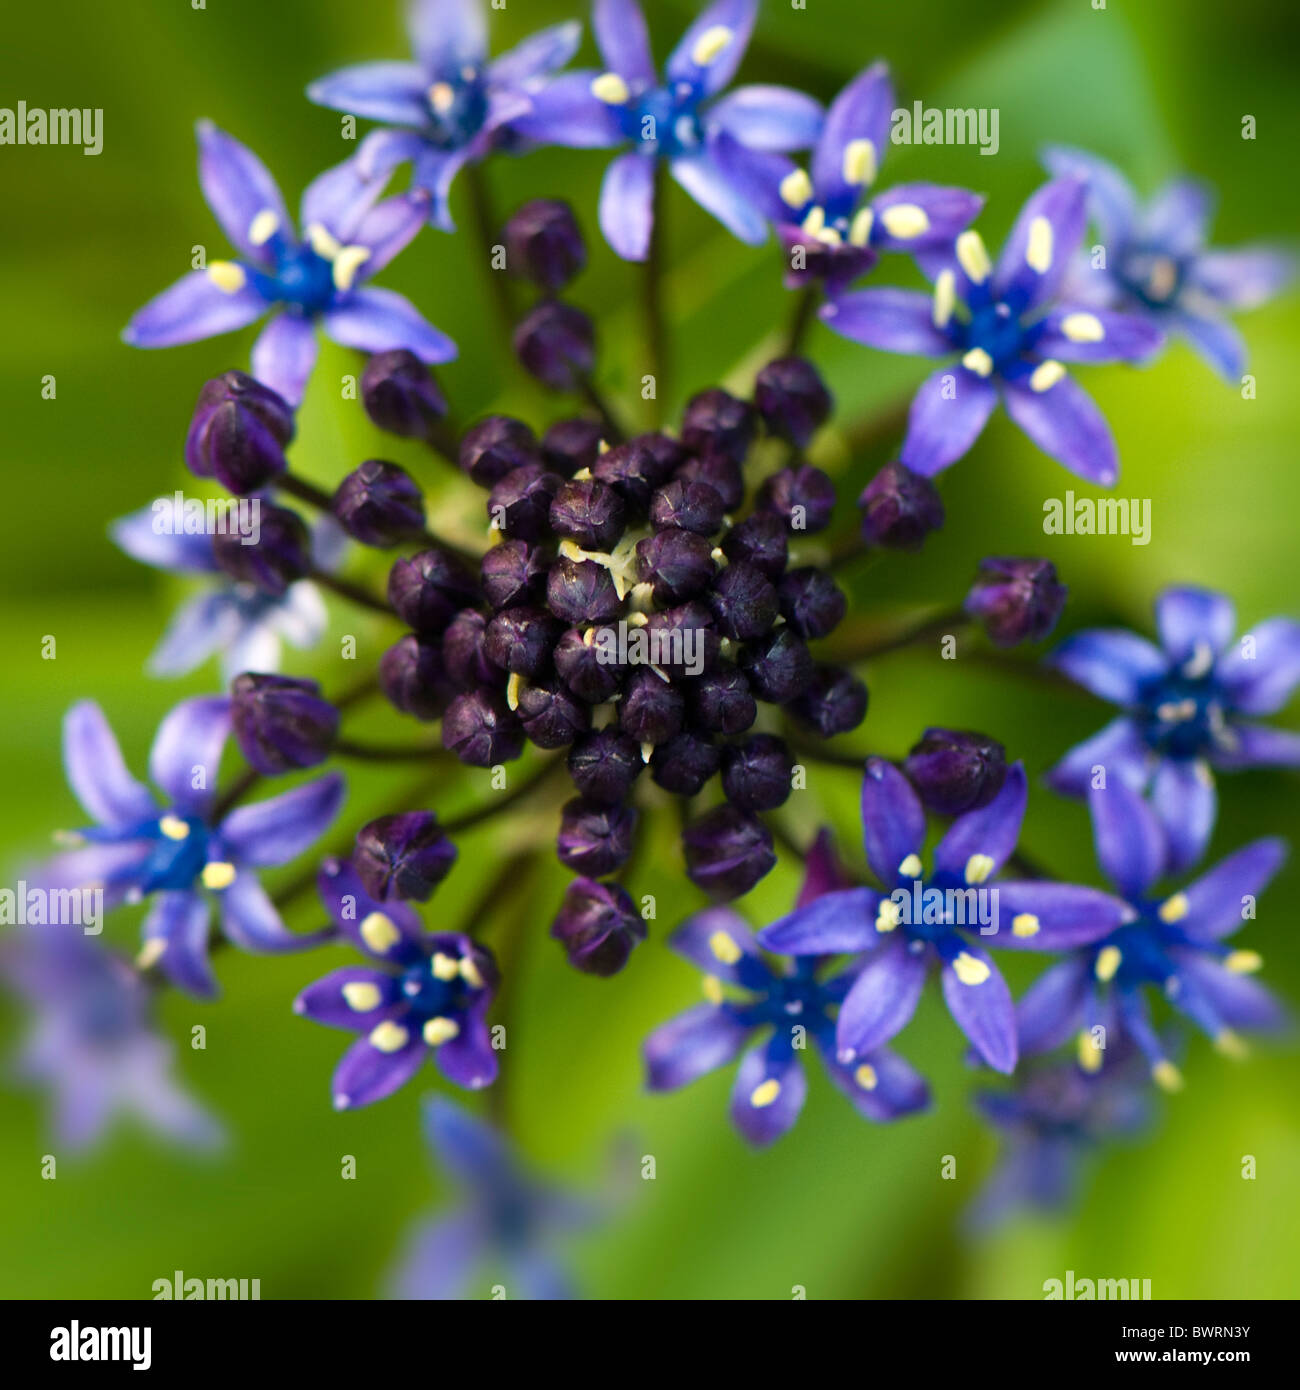 A single flower head of Scilla peruviana - Cuban Lily  or Portuguese peruvian Squill Stock Photo